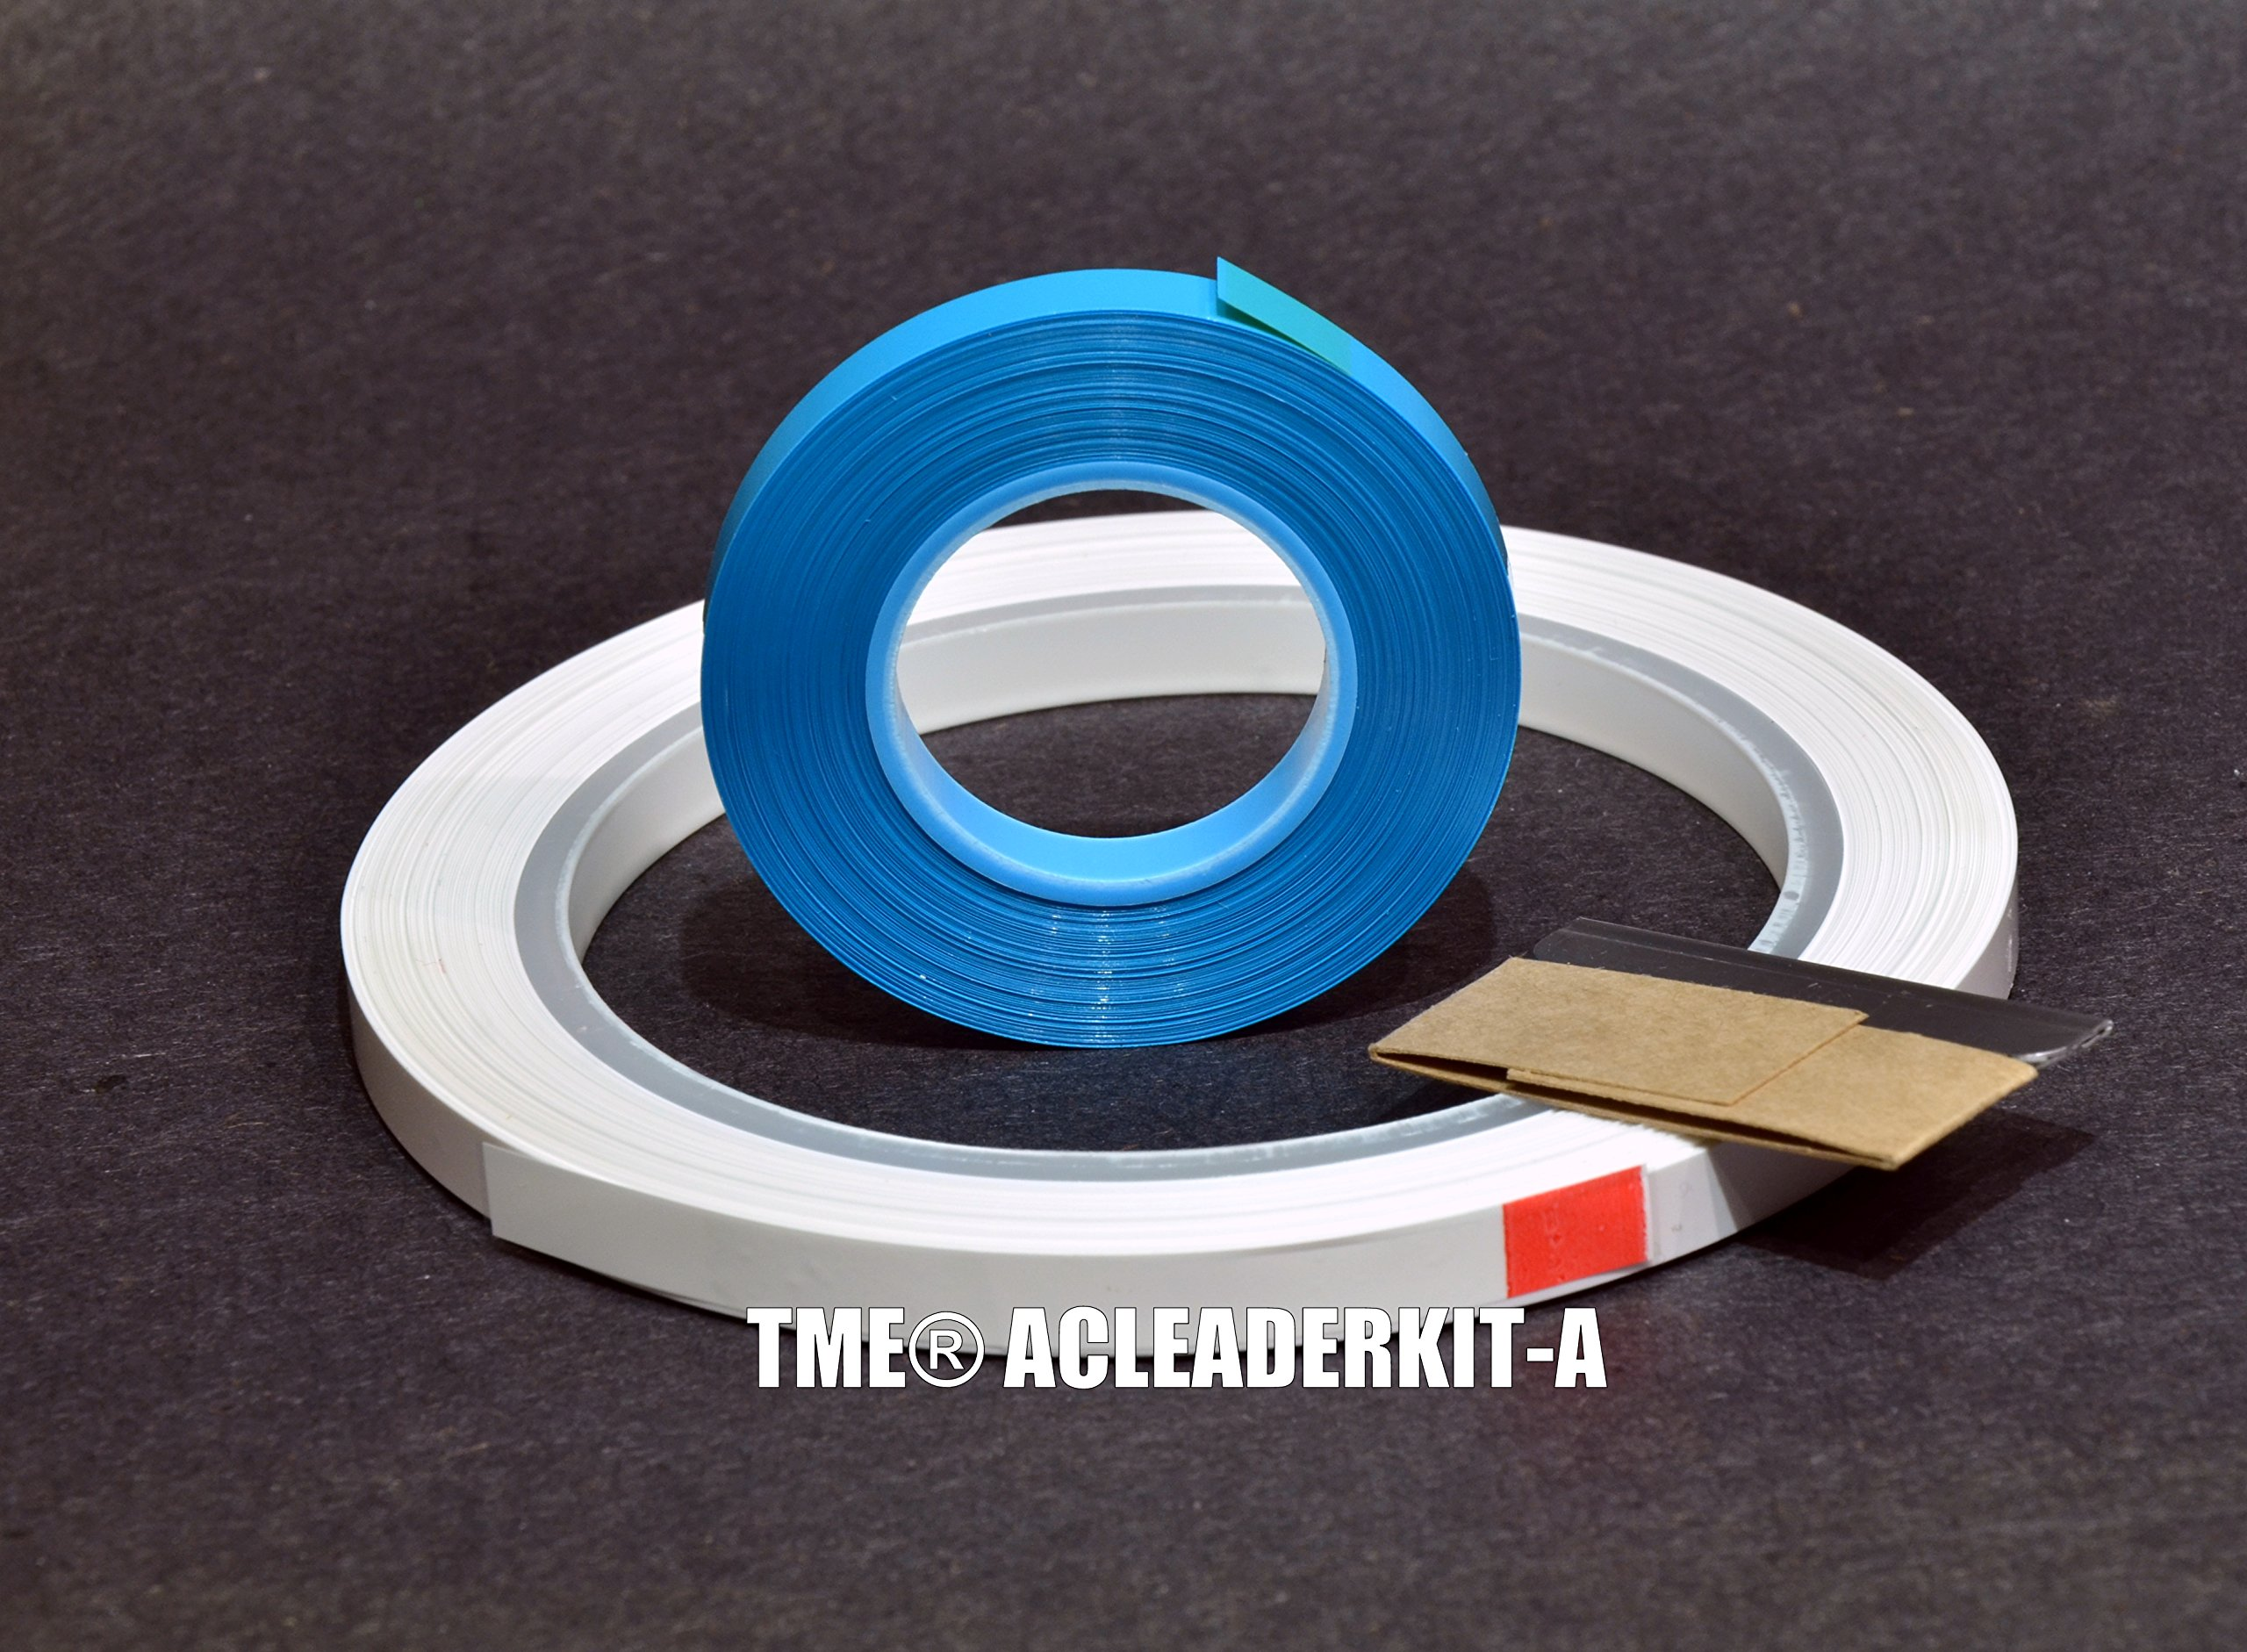 Open Reel Audio Leader Tape Kit Solid White 1/4'' X 200 Ft With Splicing Tape for Maxell, RMGI, AMPEX, and ATR Tape TME PN ACLEADERKIT-A by TME